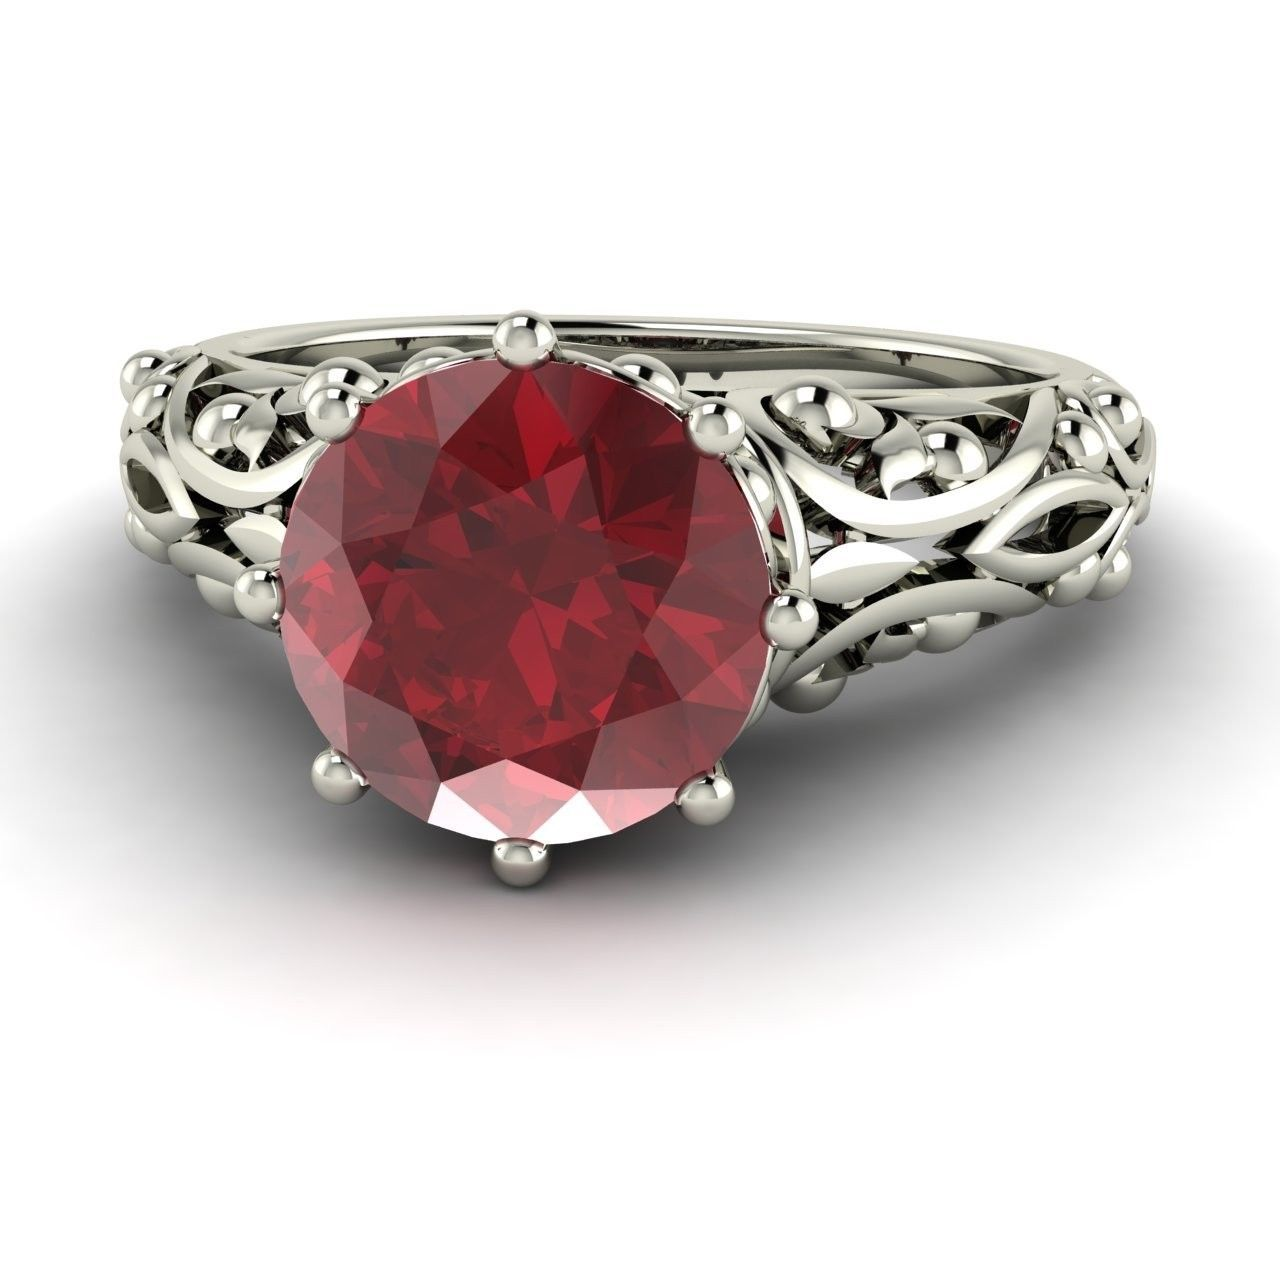 Natural Ruby Solitaire Vintage Look Engagement Ring In 14k